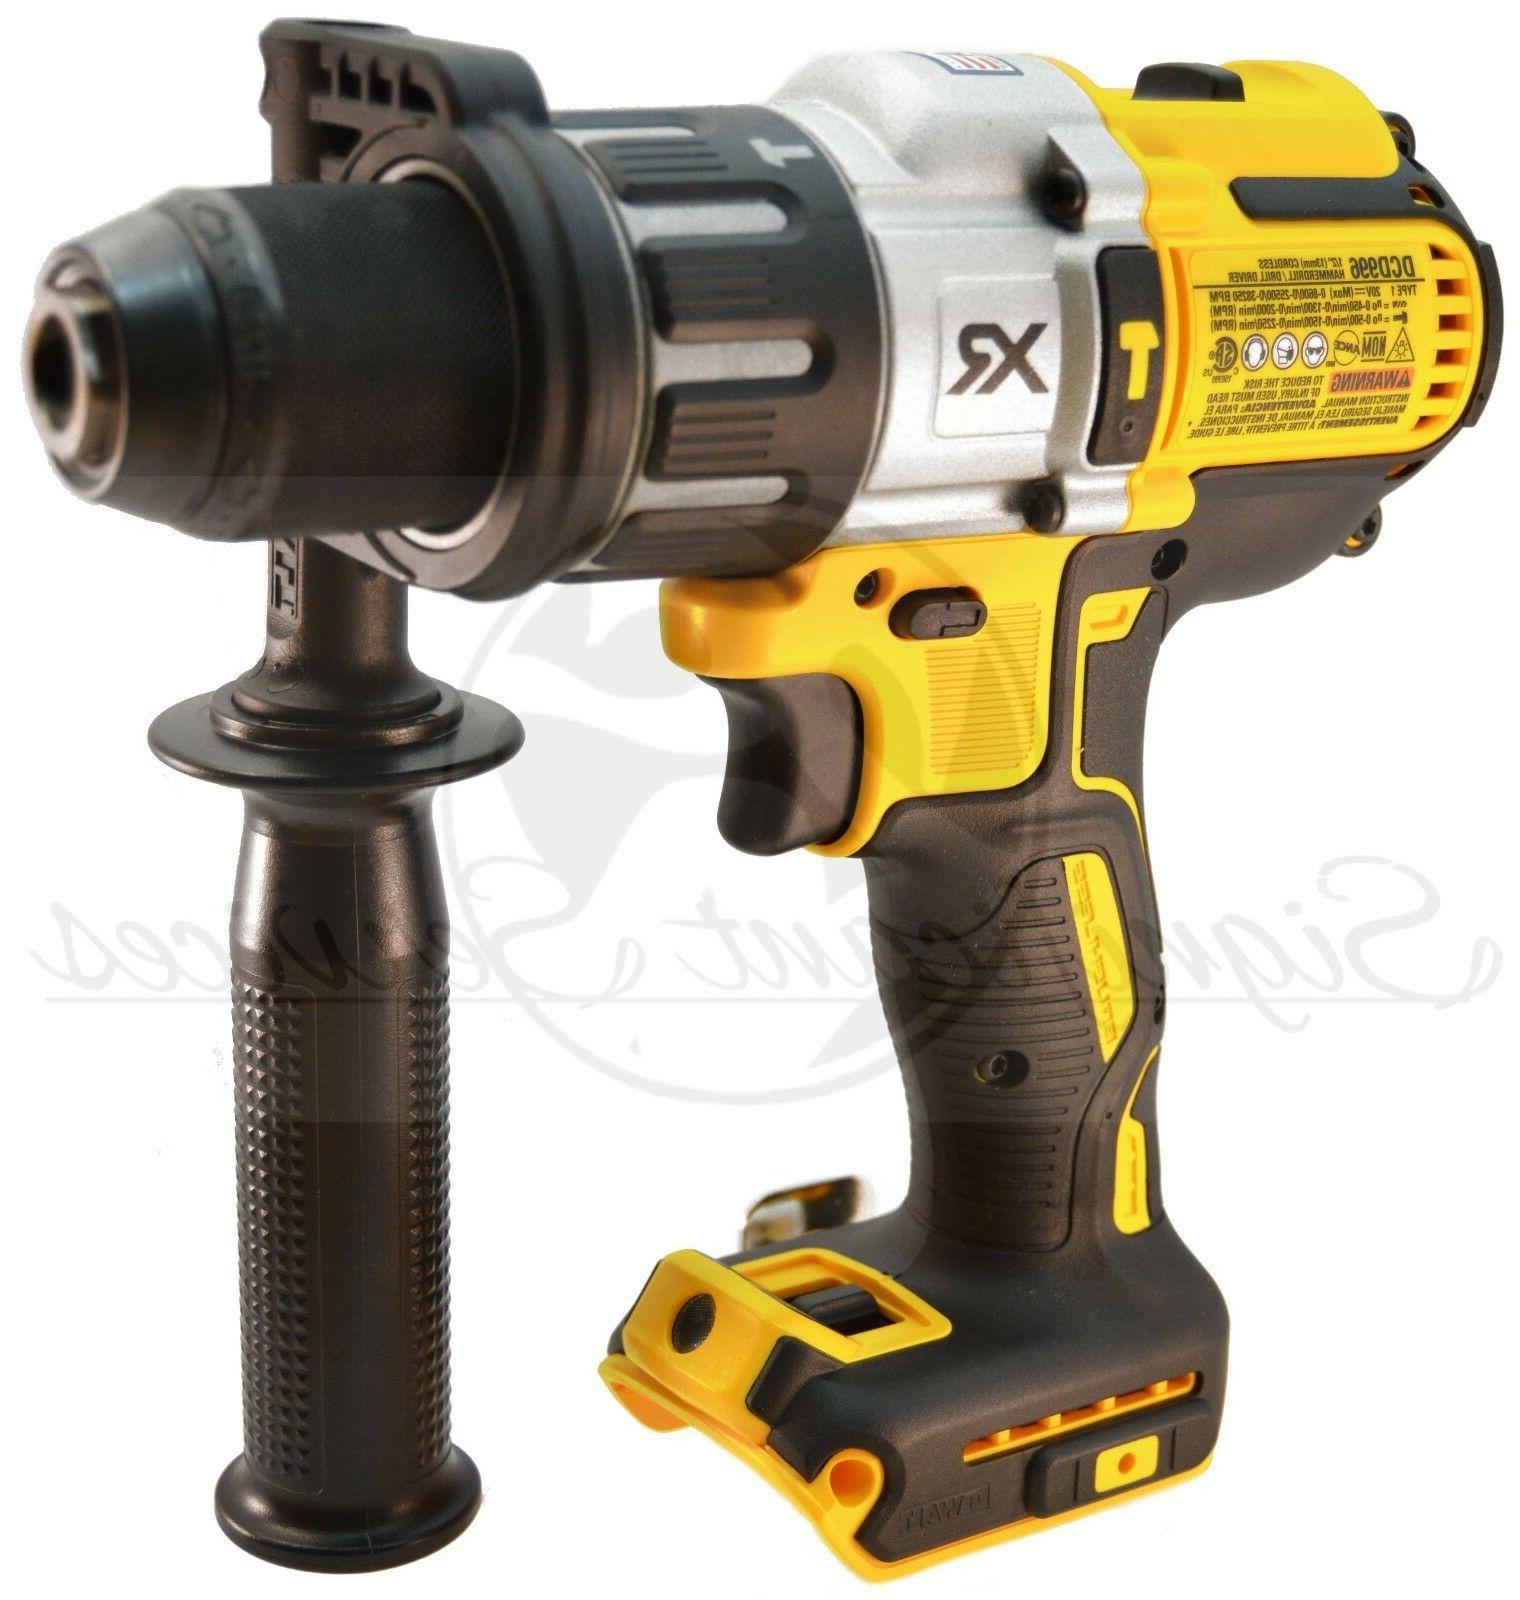 DeWALT 20V MAX XR 3-Speed 1/2 Drill